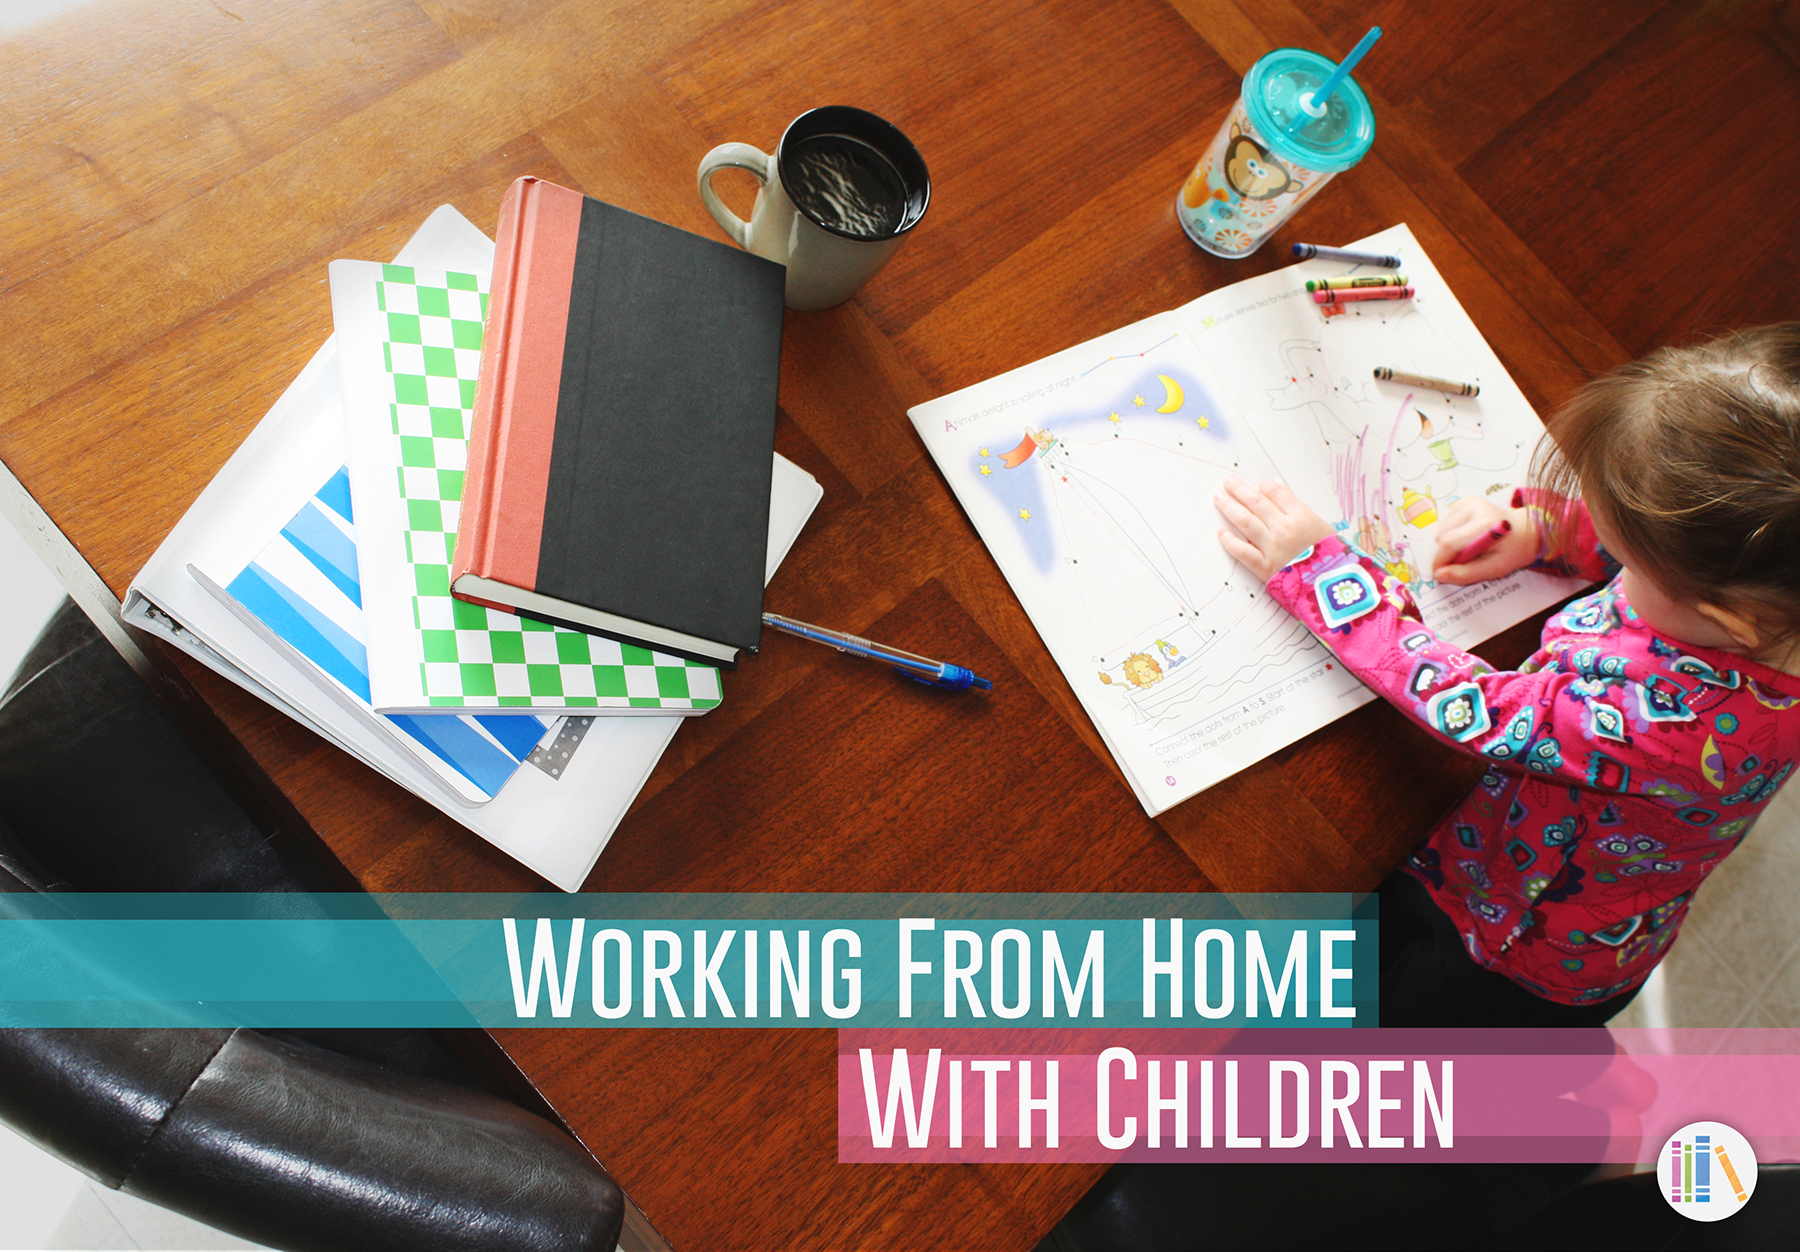 Working from home with children.